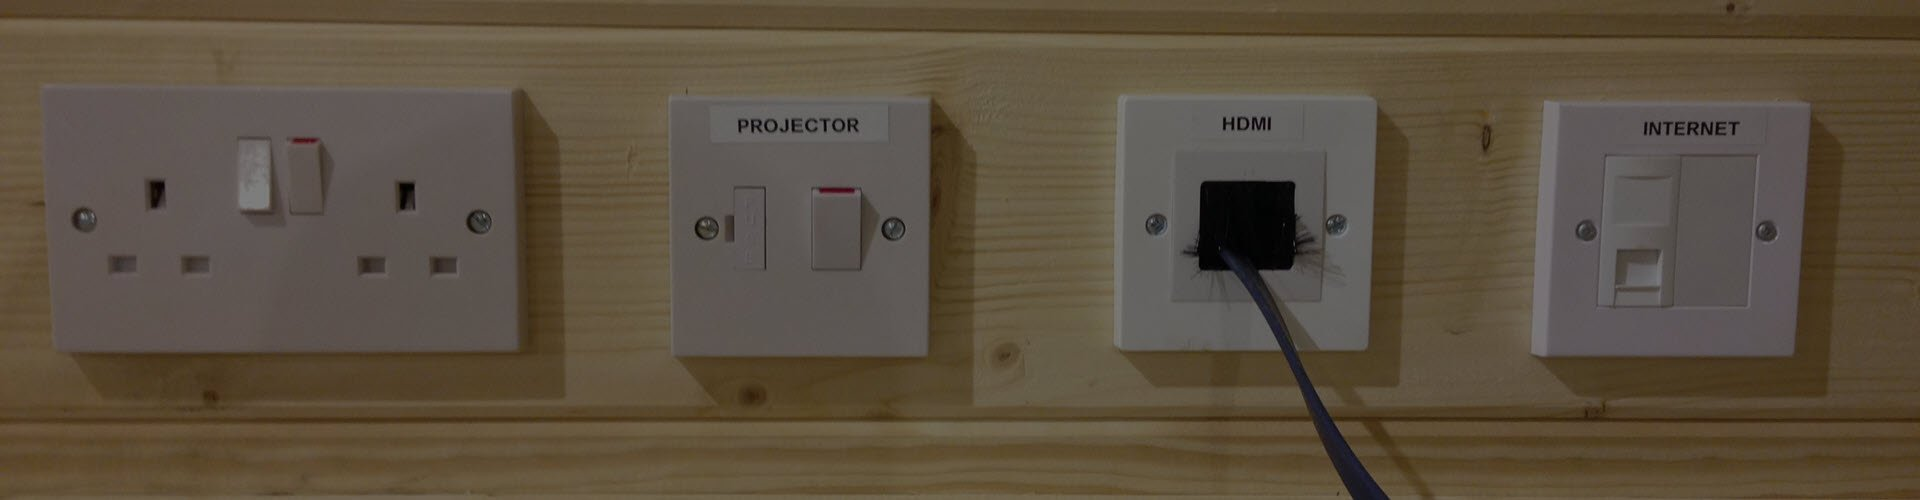 HDMI and Internet outlets for Log Cabins